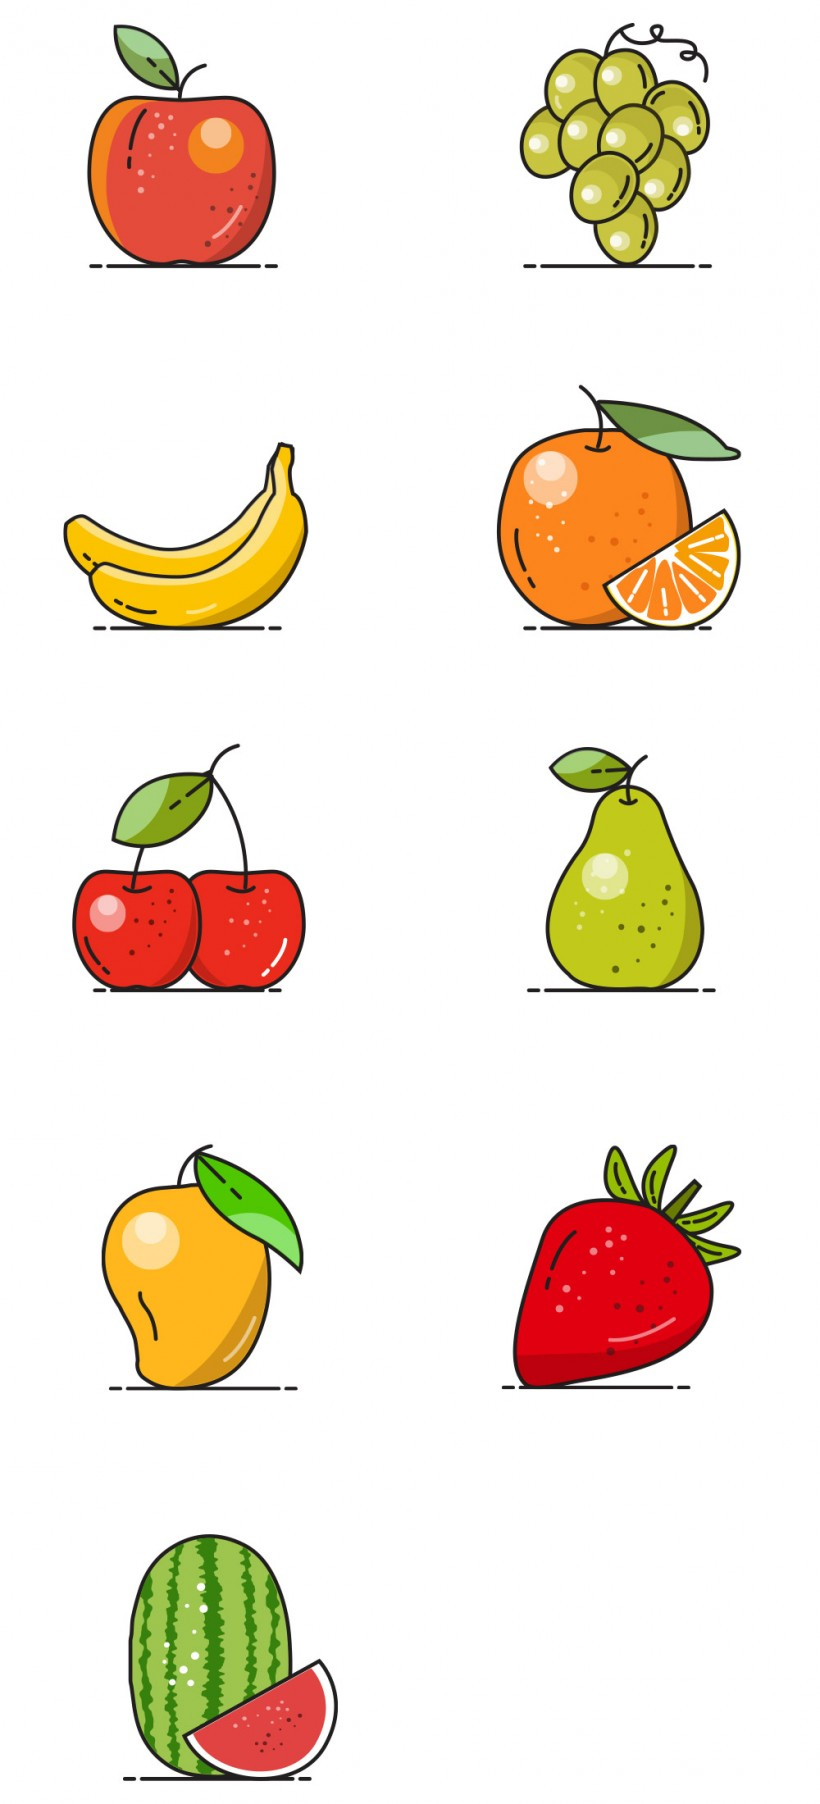 free vector fruit icons -